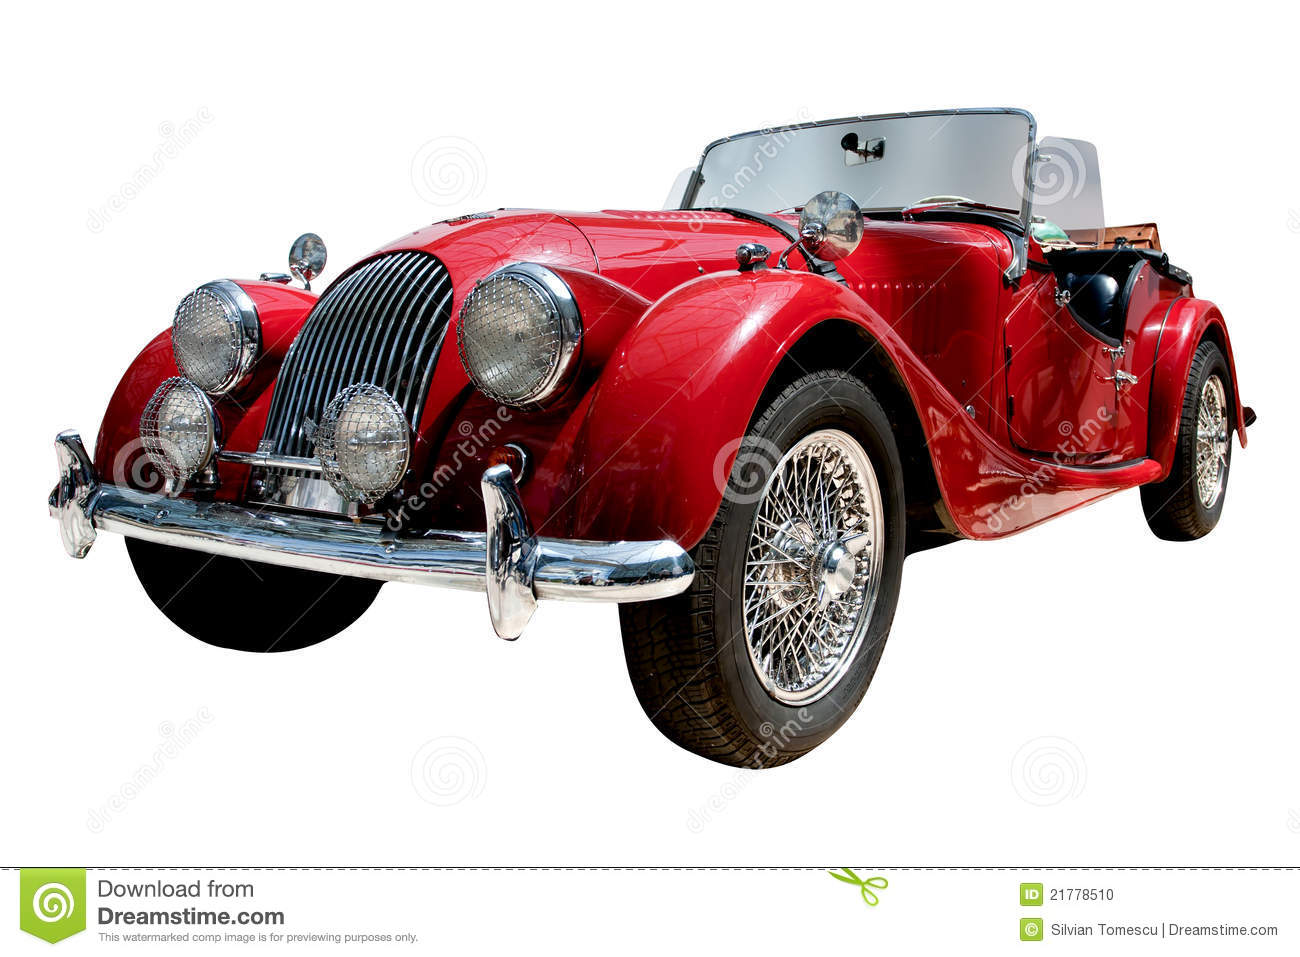 Vintage sport convertible classic car with alloy wheels. Clipping path